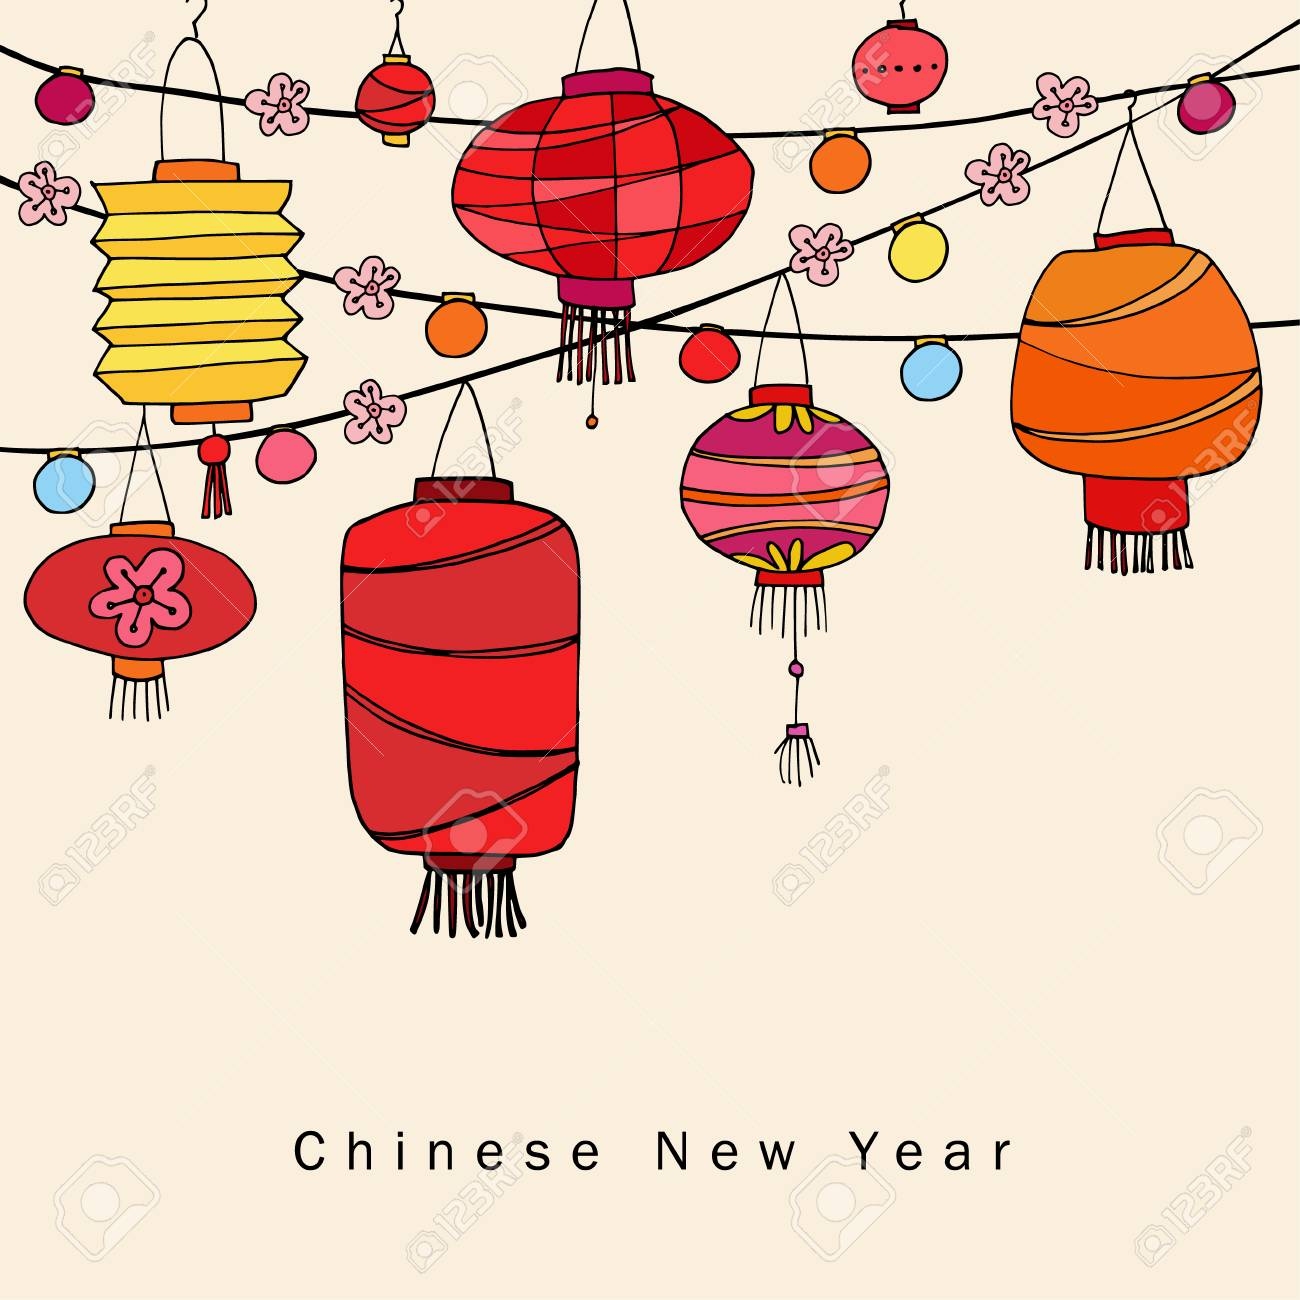 chinese new year greeting card invitation with string of hand drawn red lanterns asian